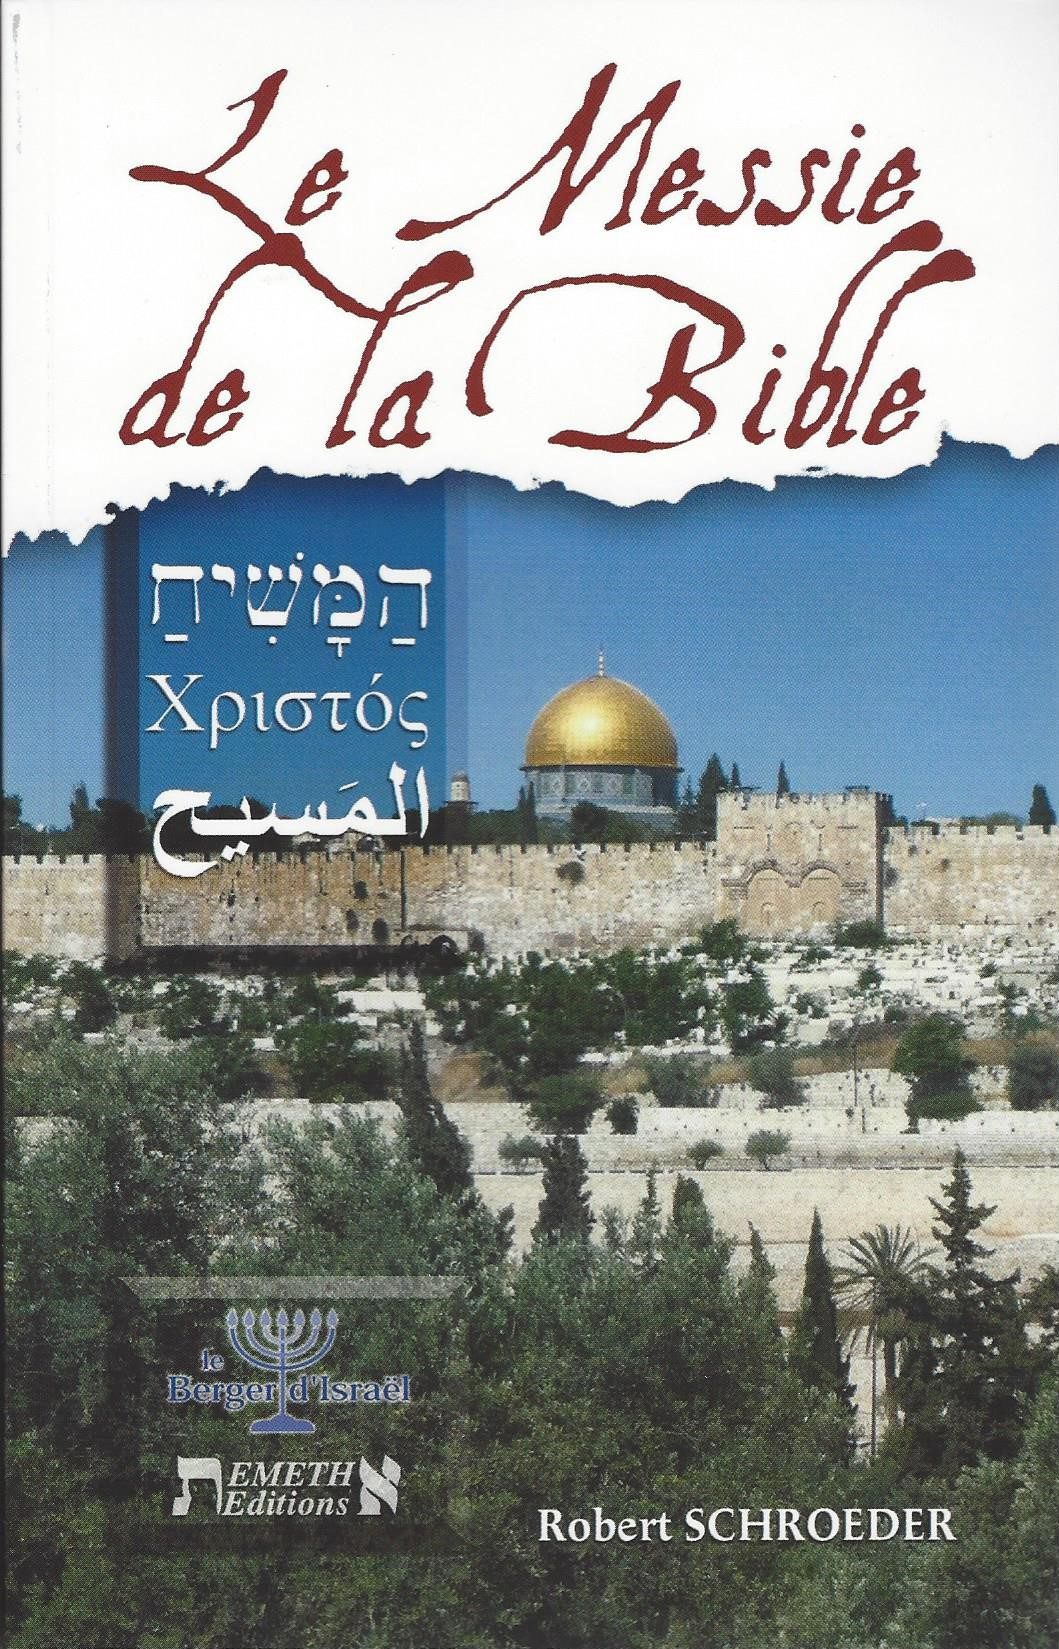 Le Messie de la Bible